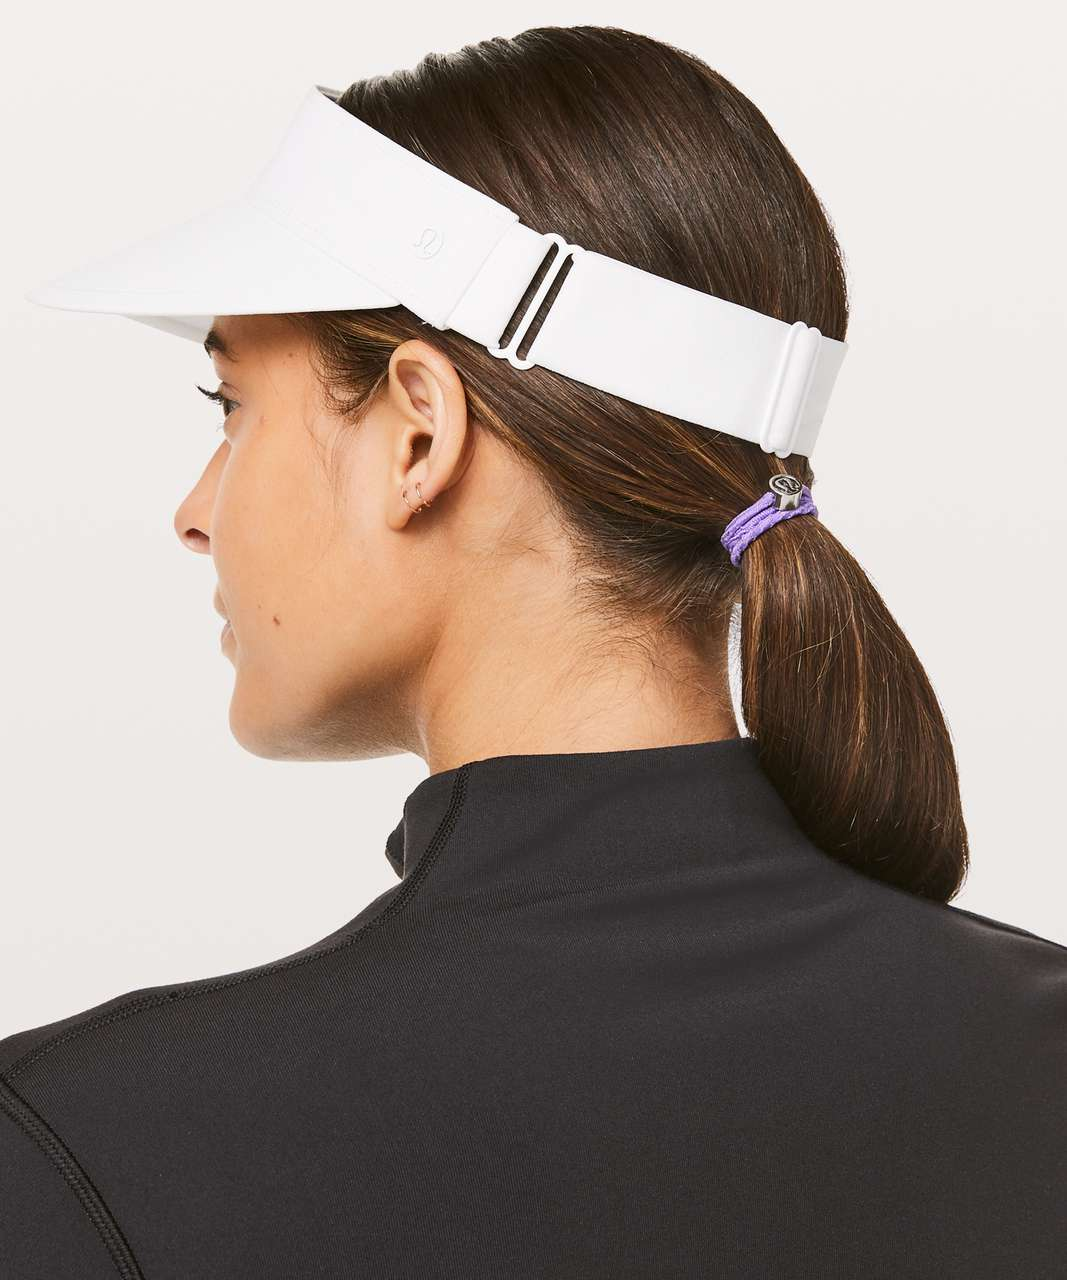 Lululemon Fast Paced Run Visor - White